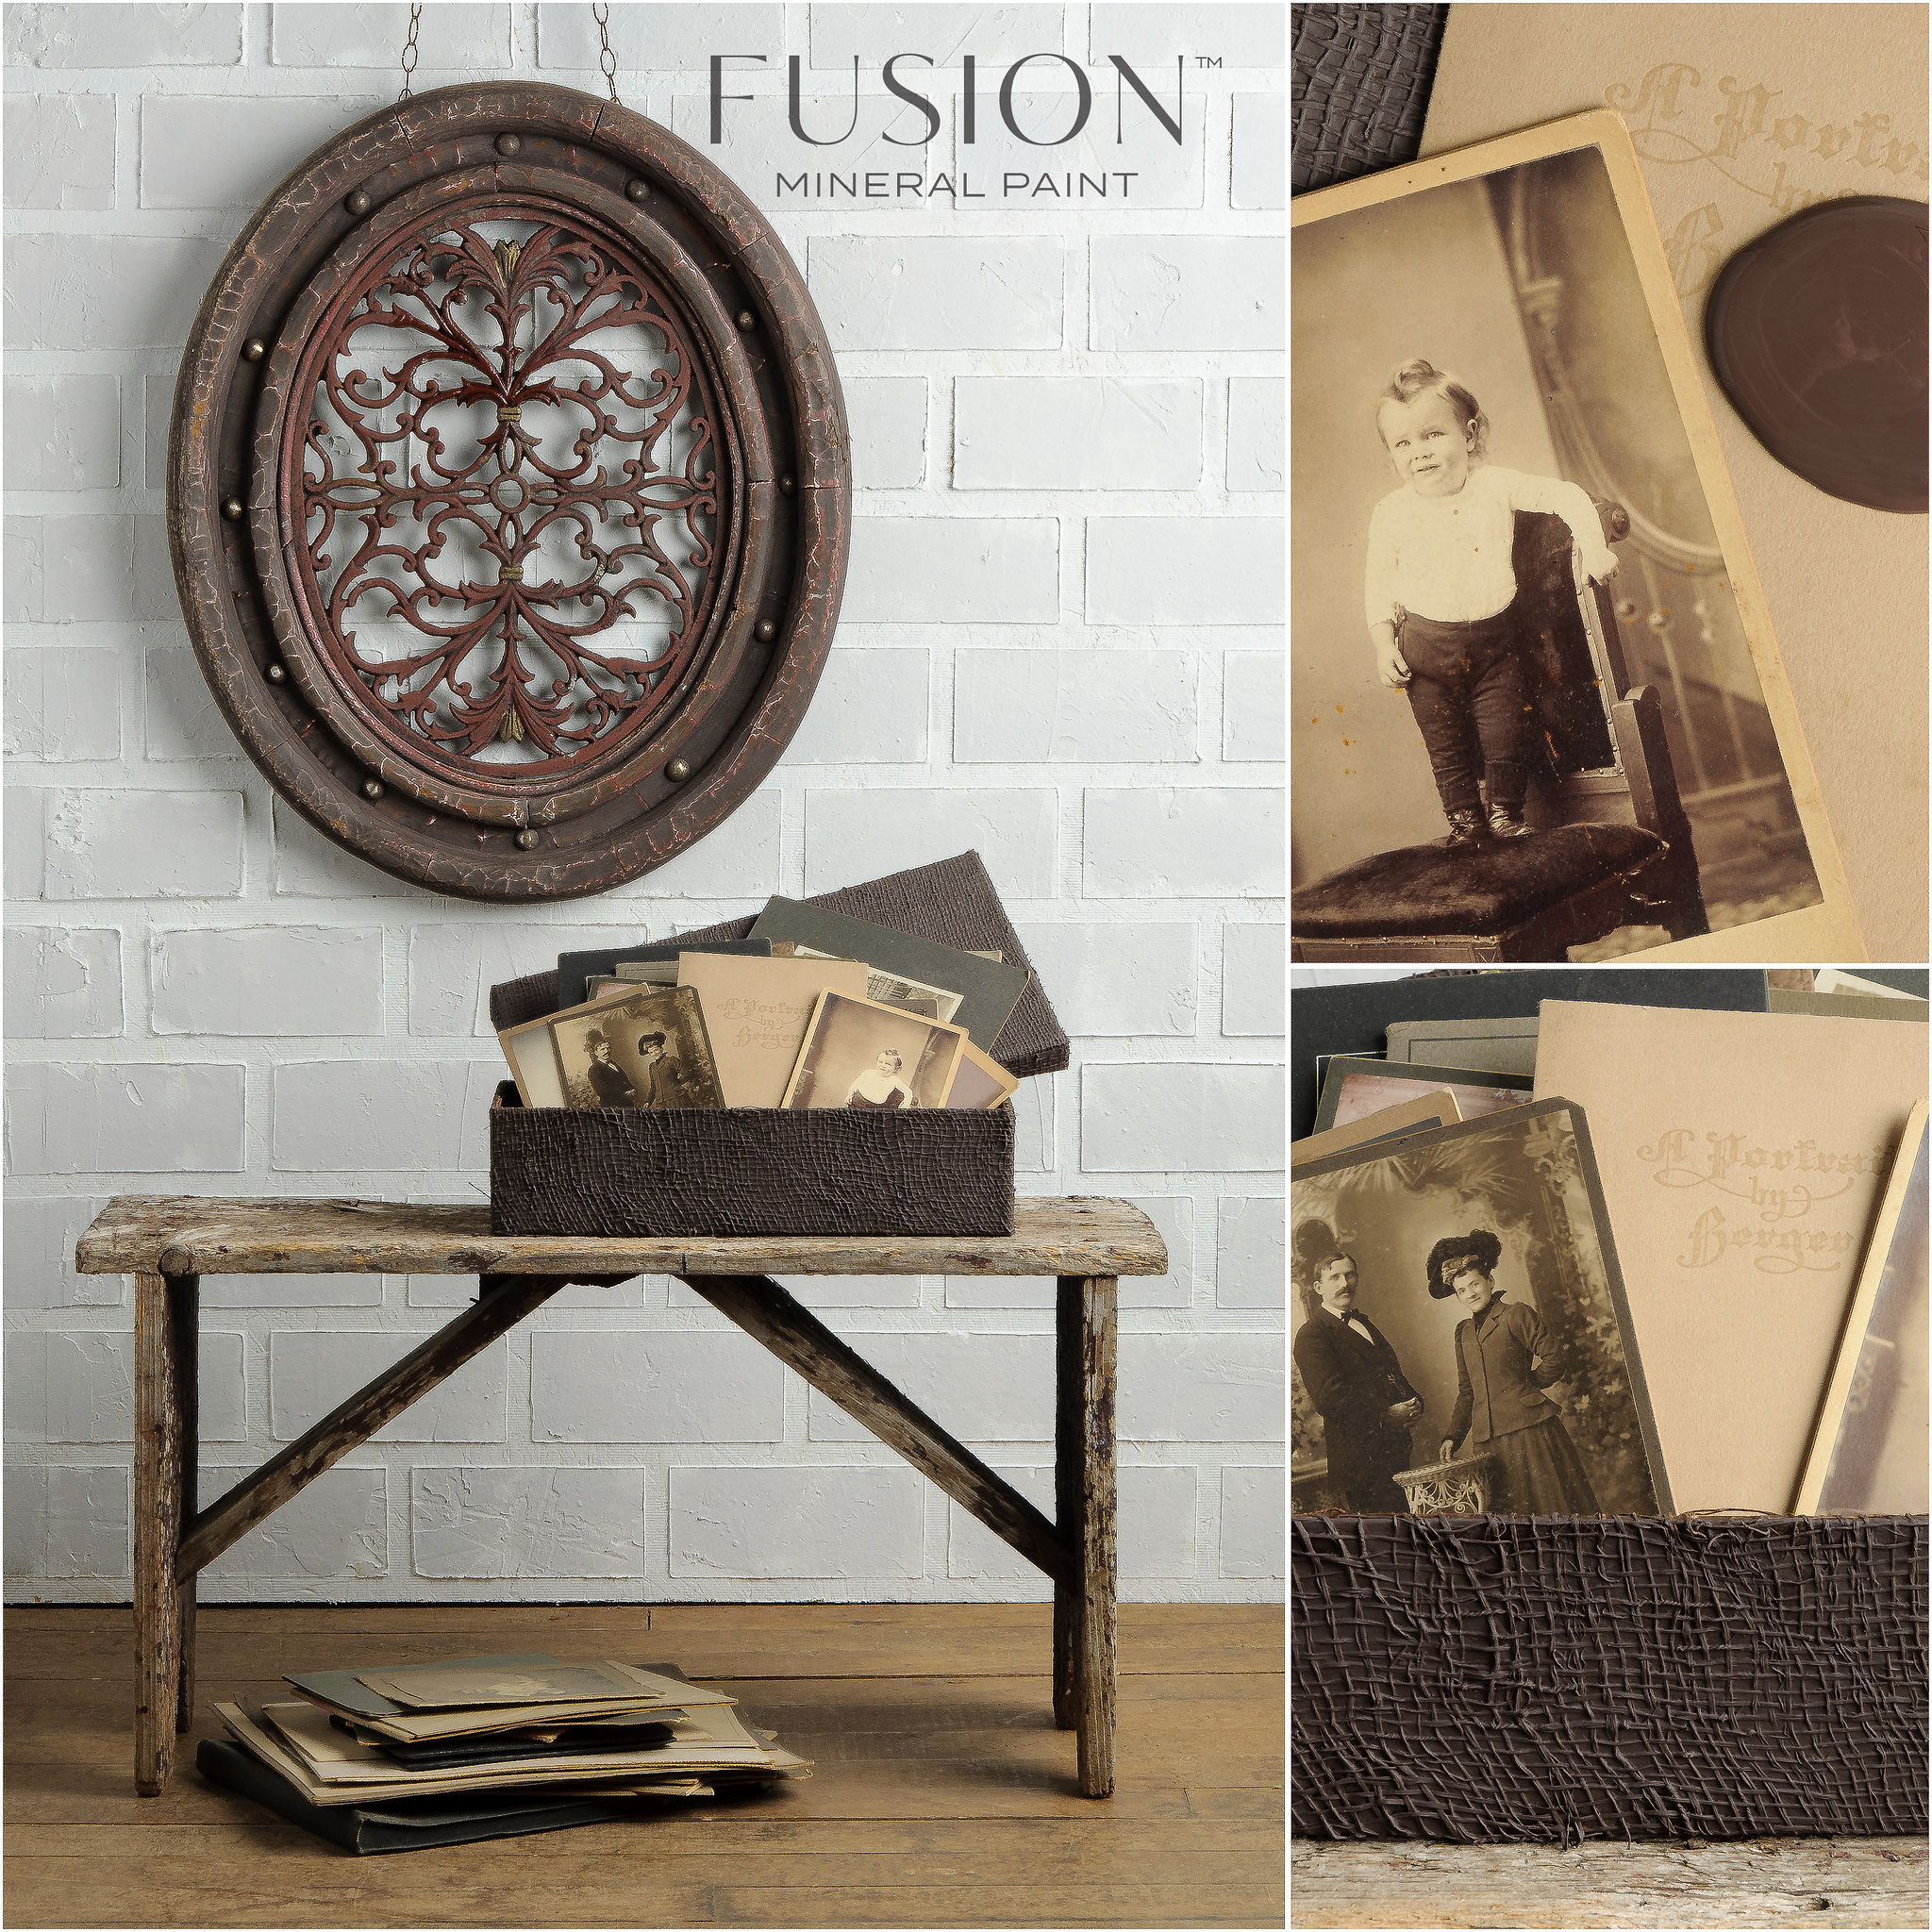 Wall Art and Box Painted in Chocolate Fusion Mineral Paint